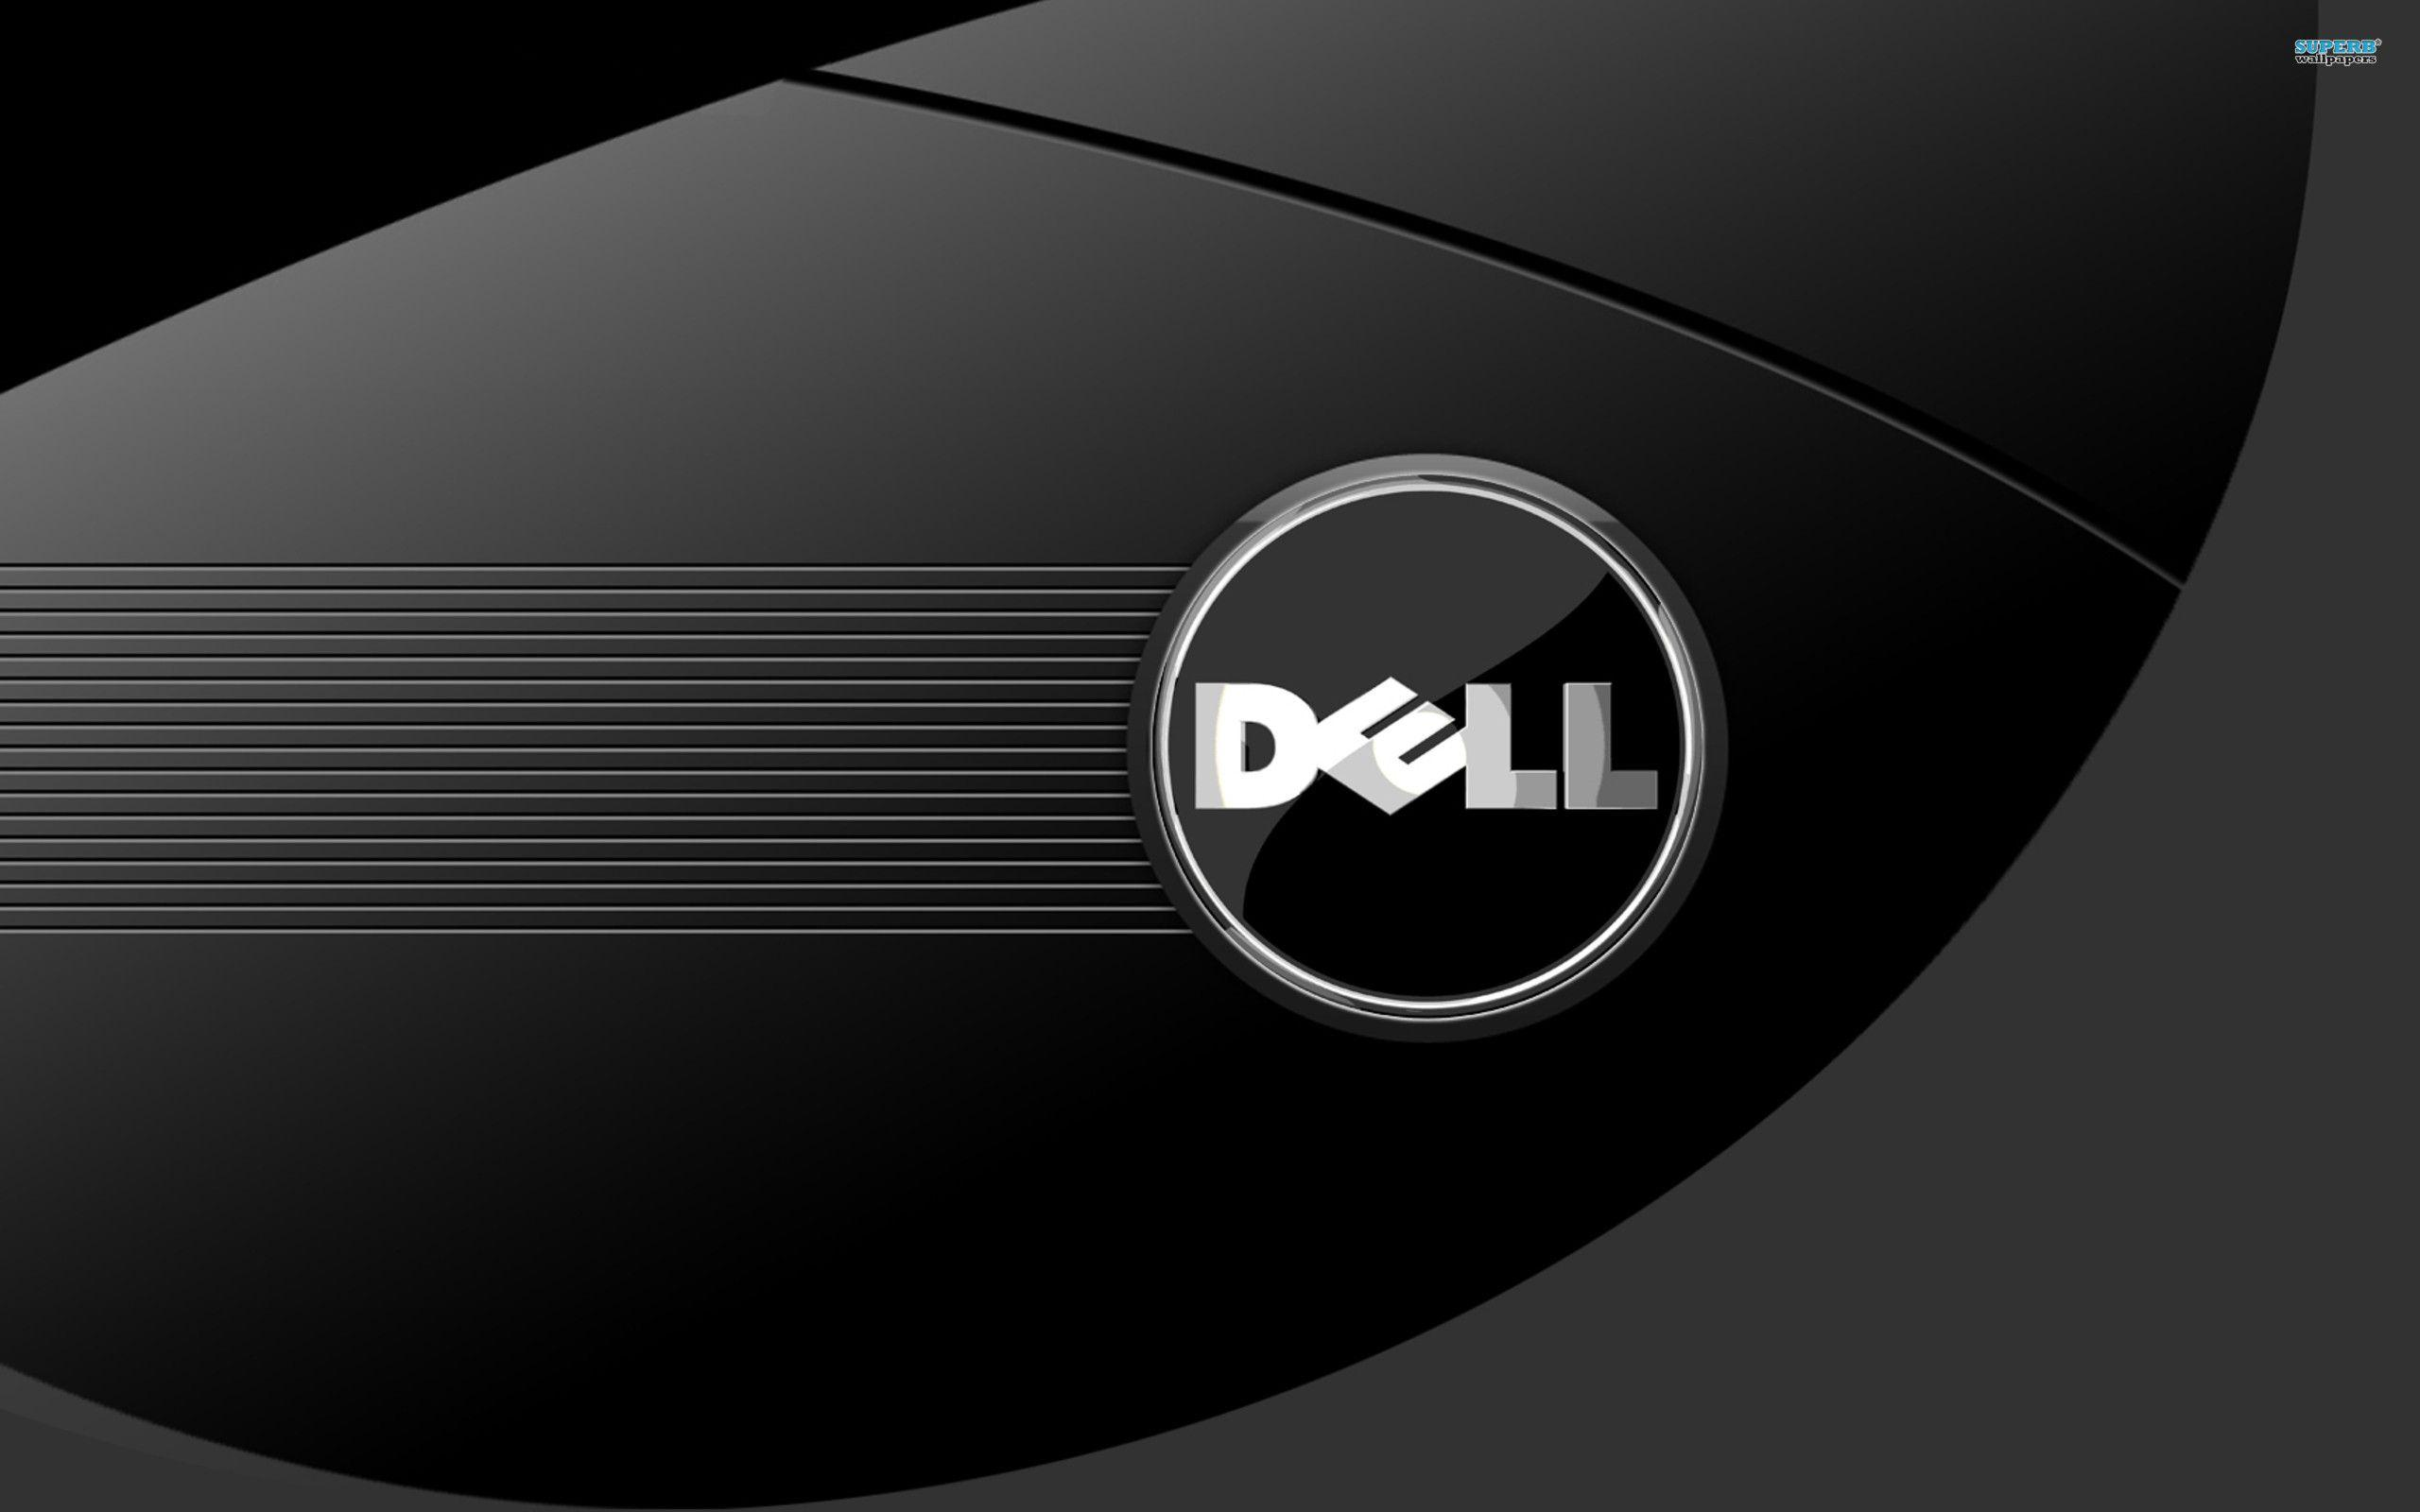 Dell Wallpapers - Full HD wallpaper search